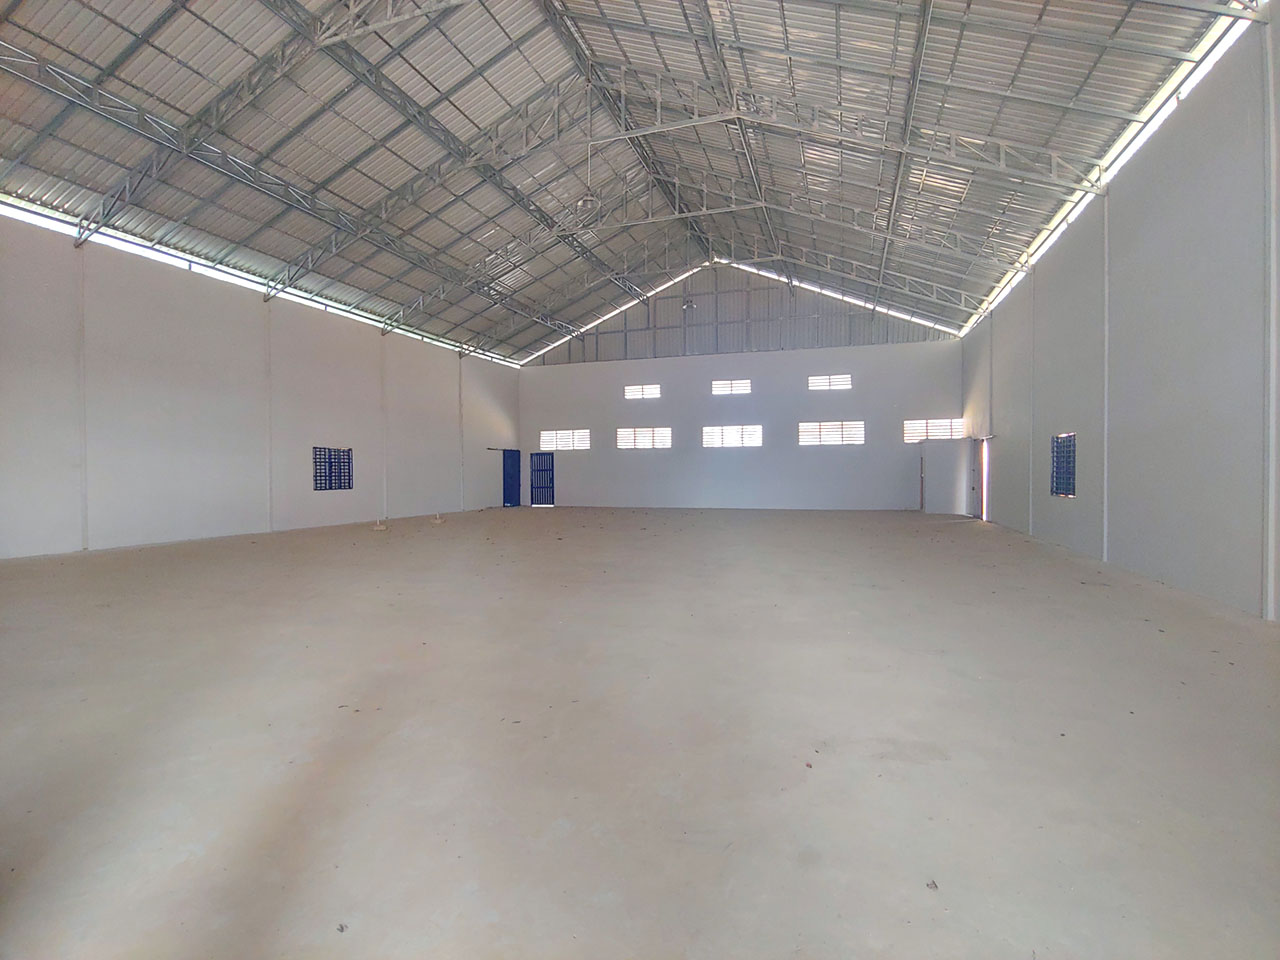 600 Sq.m new-build warehouse for rent in Phnom Penh Thmei area